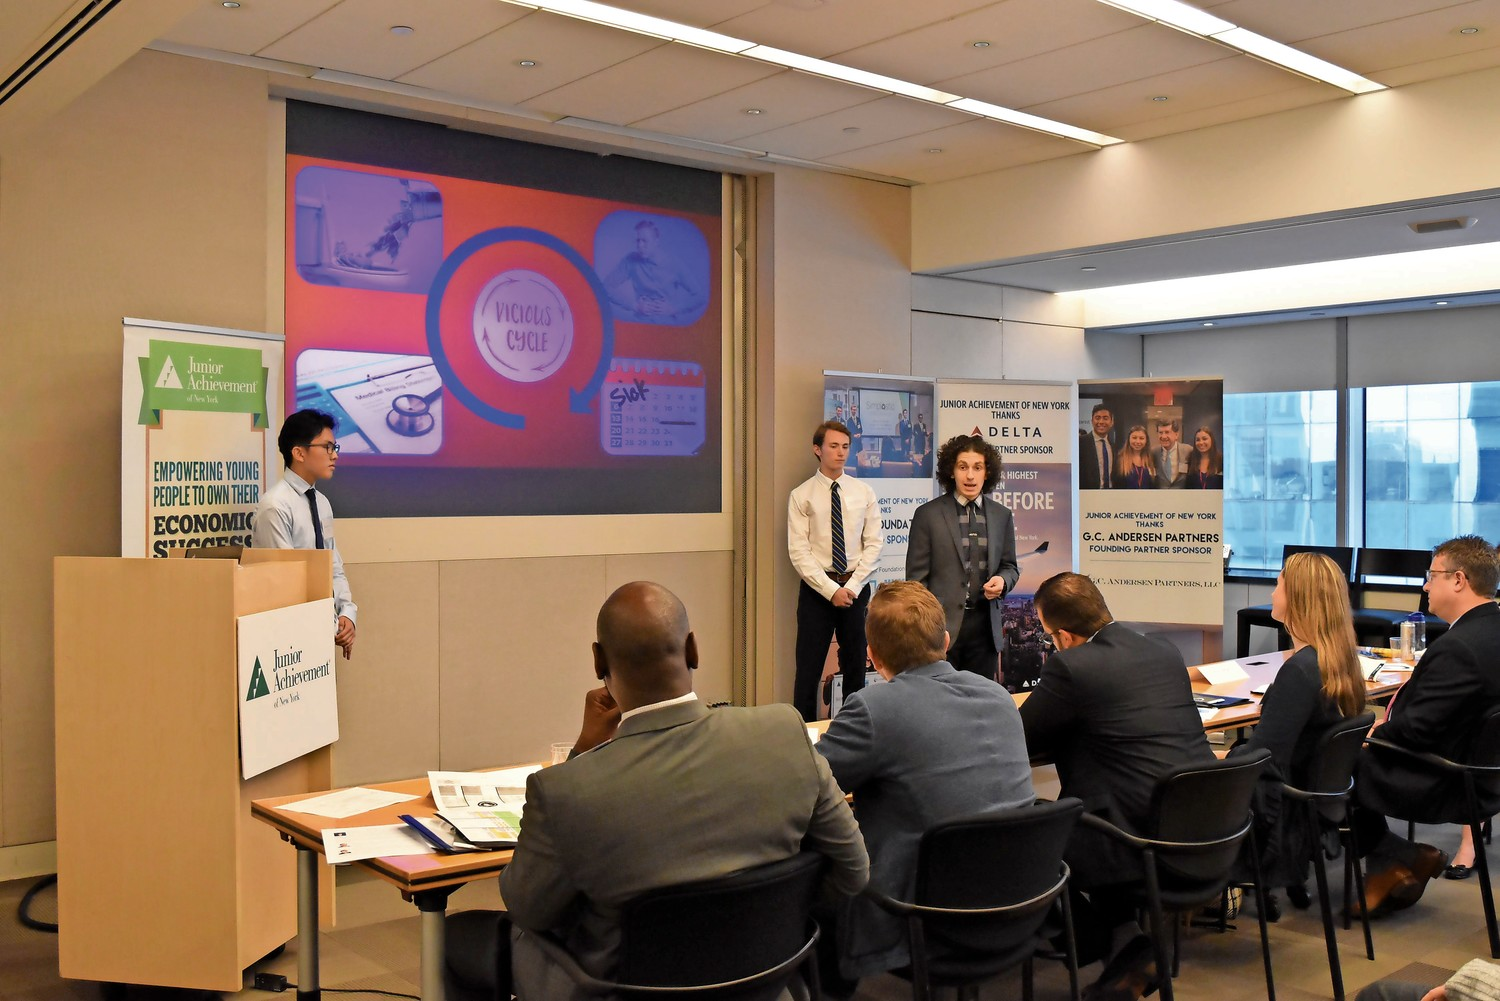 Bronx Science students Seungwon Hyun, Dvir Avnon-Klein, center, and James Snyder present their business idea for a biosensor that could detect contaminants in meat. They won first place.